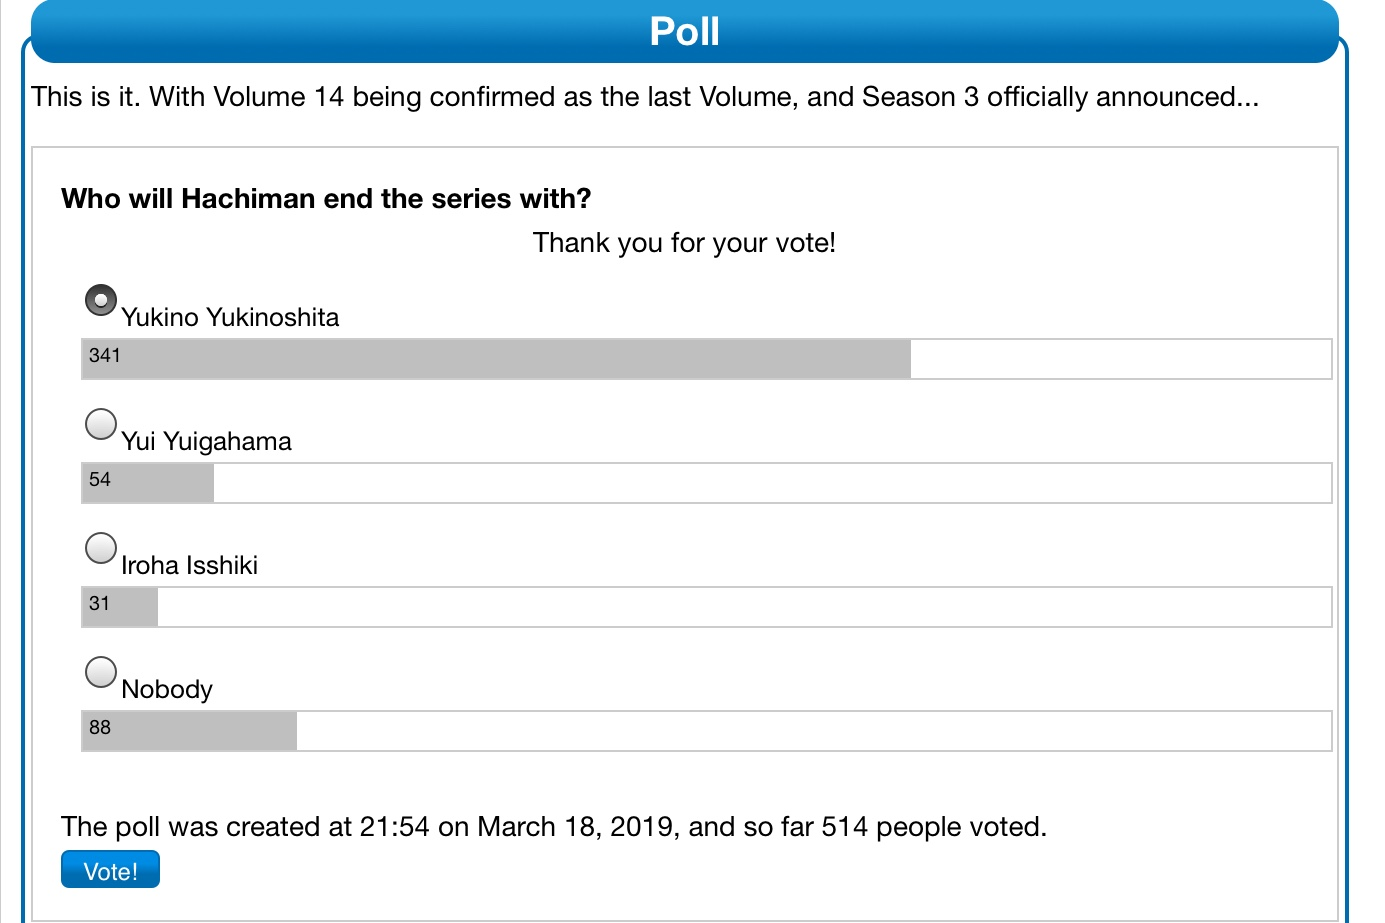 Look at the polls now..Someone spammed yui yuigahama by using bots.